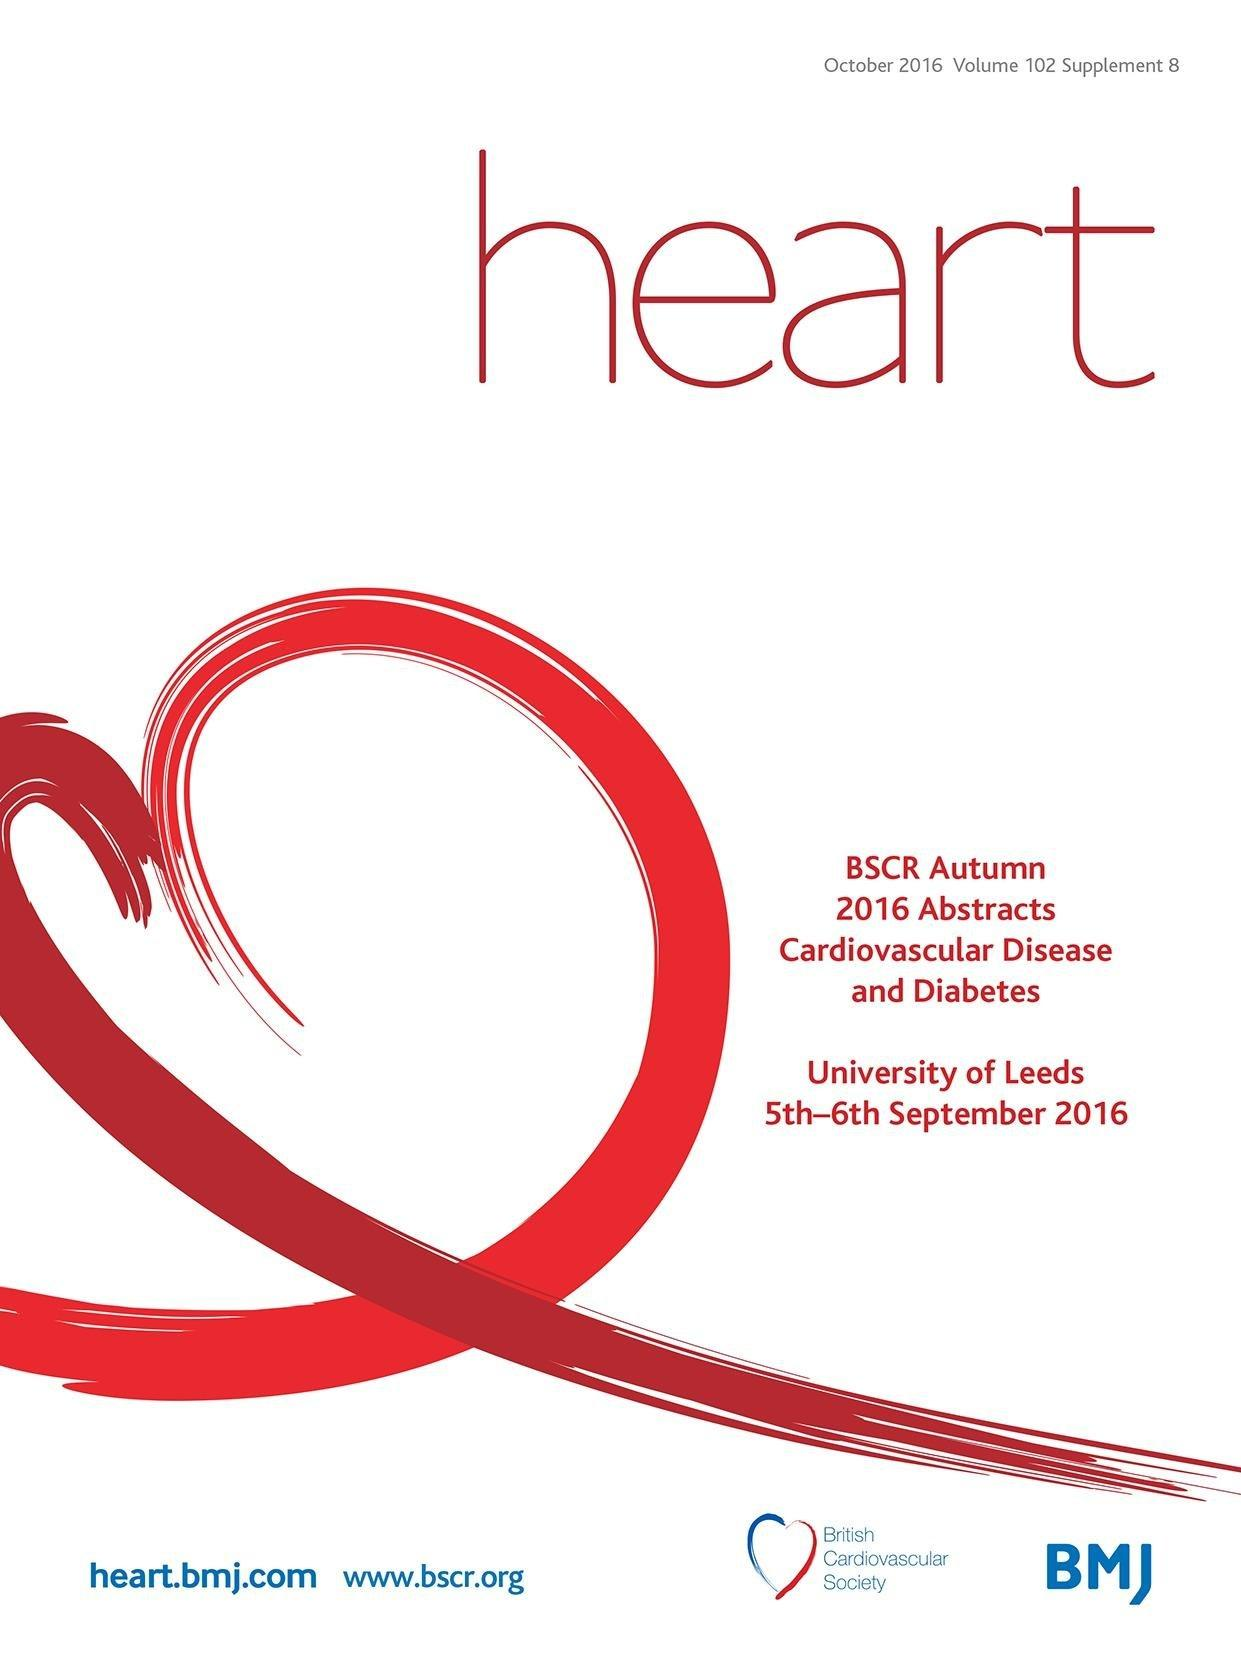 P24sucrose- And High Fat-induced Insulin Resistance Leads To Endothelial Dysfunction And Is Associated With Ketohexokinase Activation | Heart